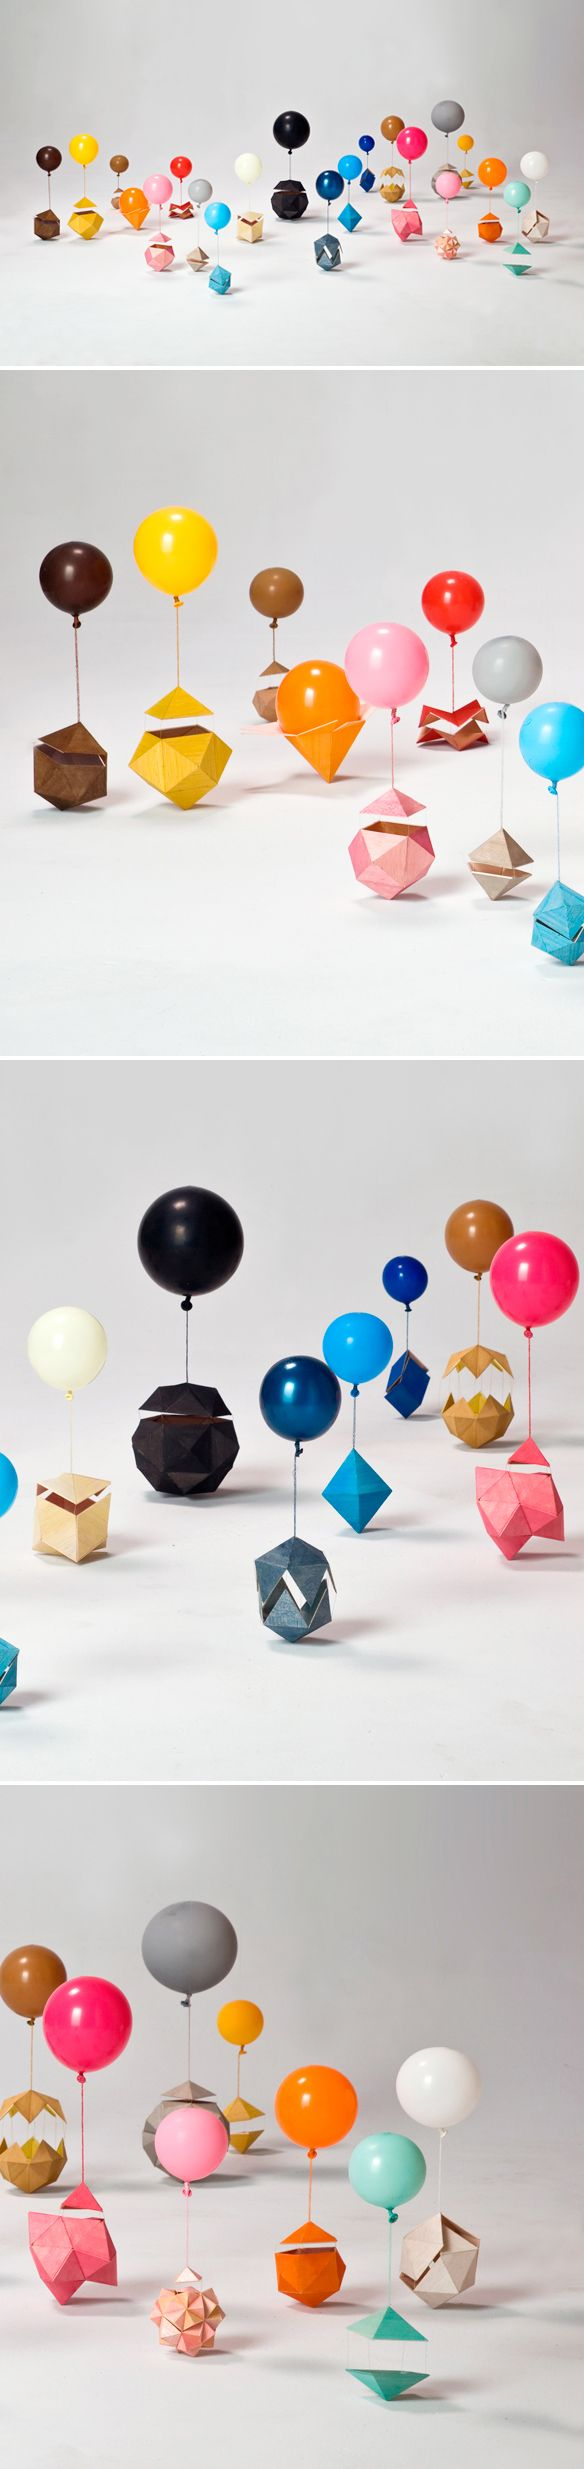 you'll want to spend time amongst these balloons. amy joy watson